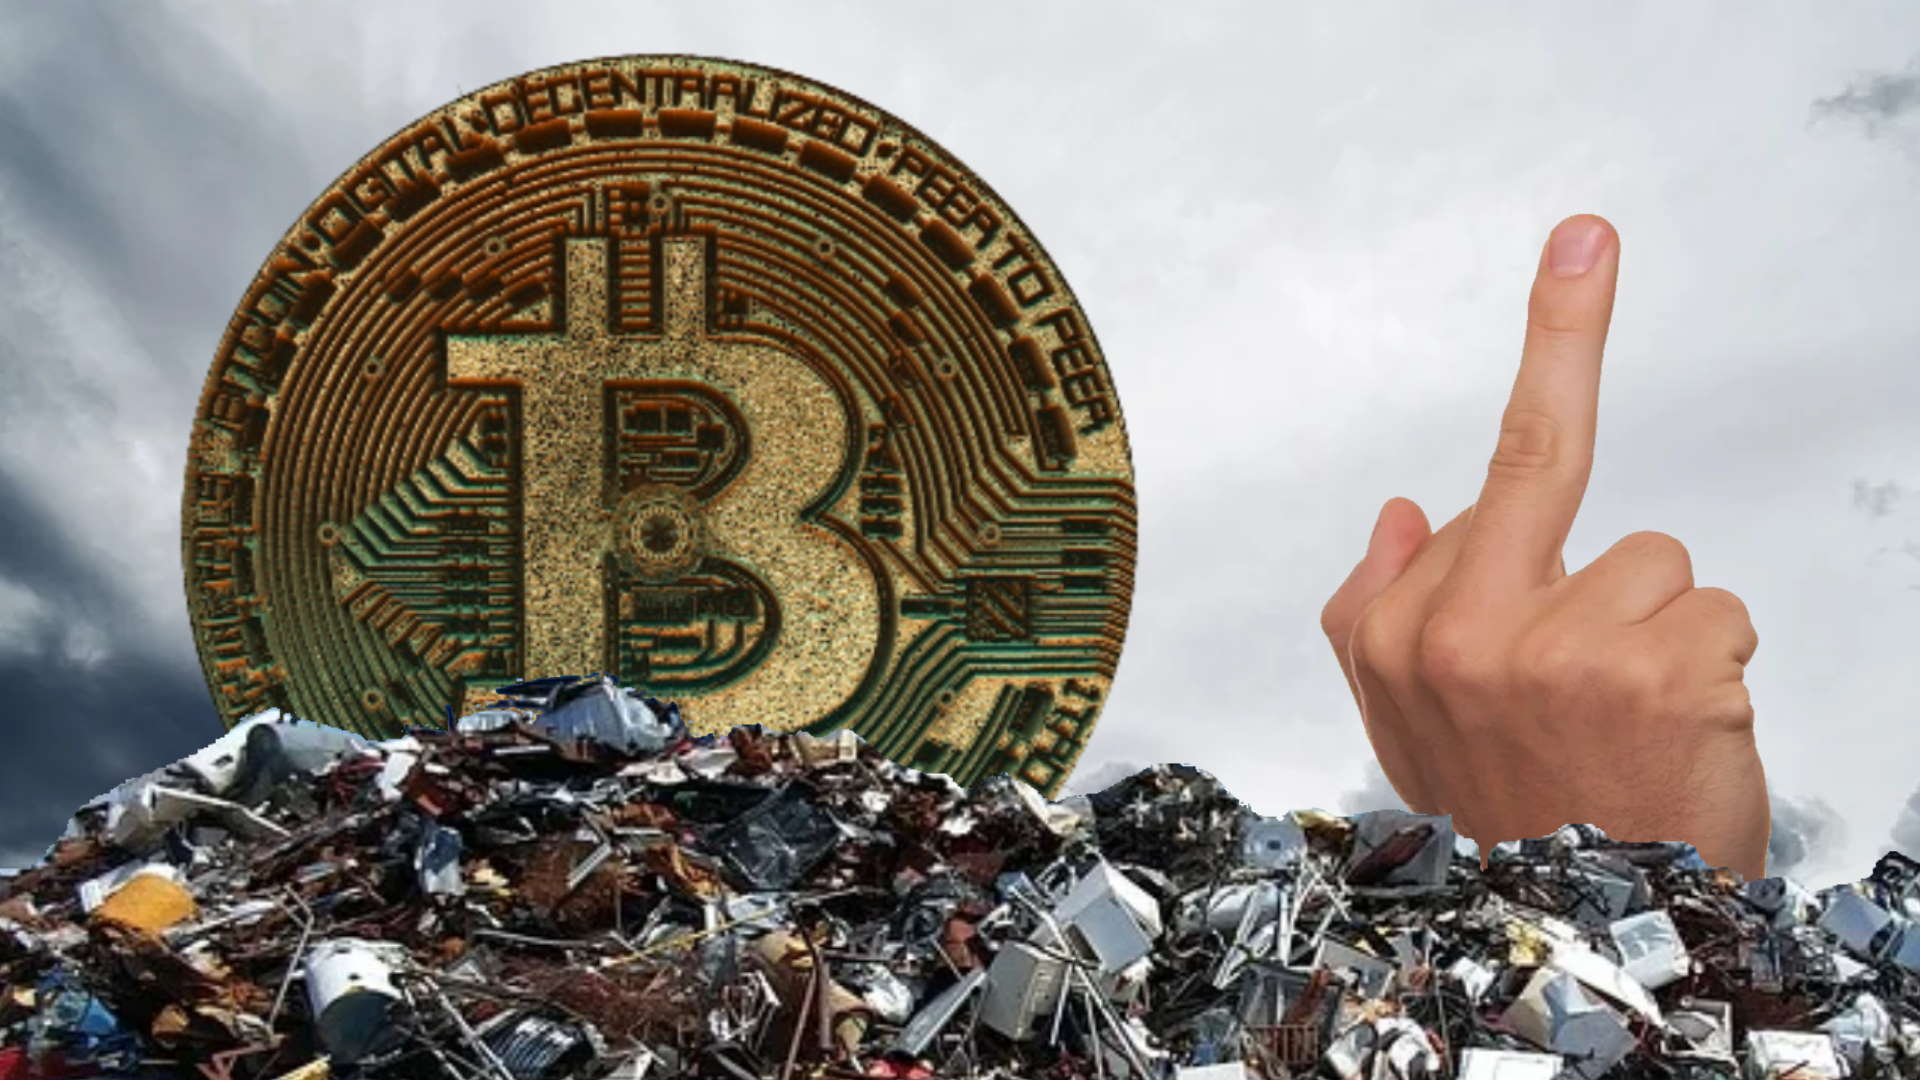 Man offers local authorities £50m to help in his hopeless quest for lost bitcoin fortune